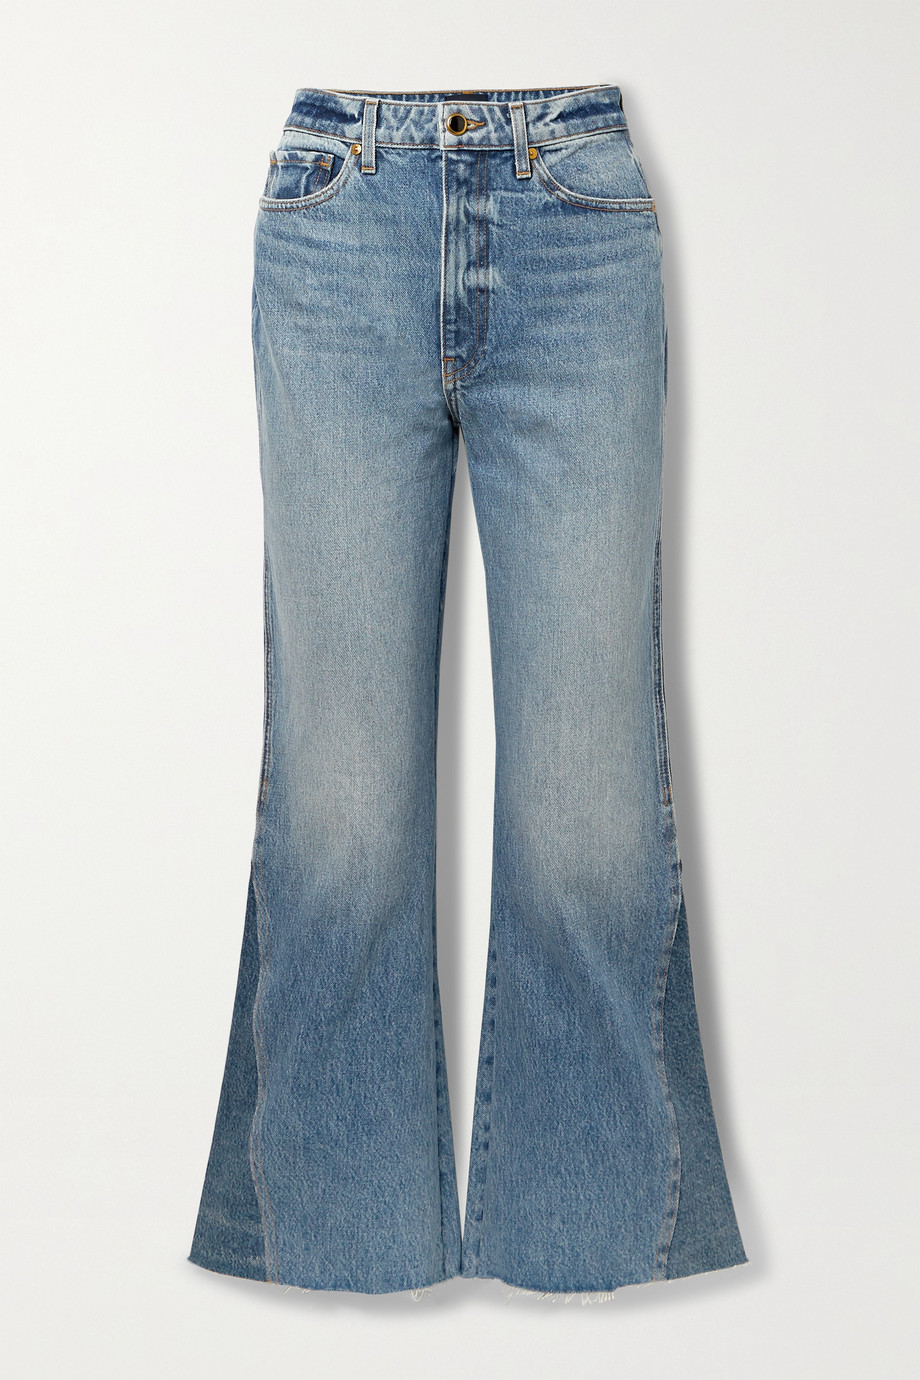 KHAITE Layla paneled cropped high-rise flared jeans